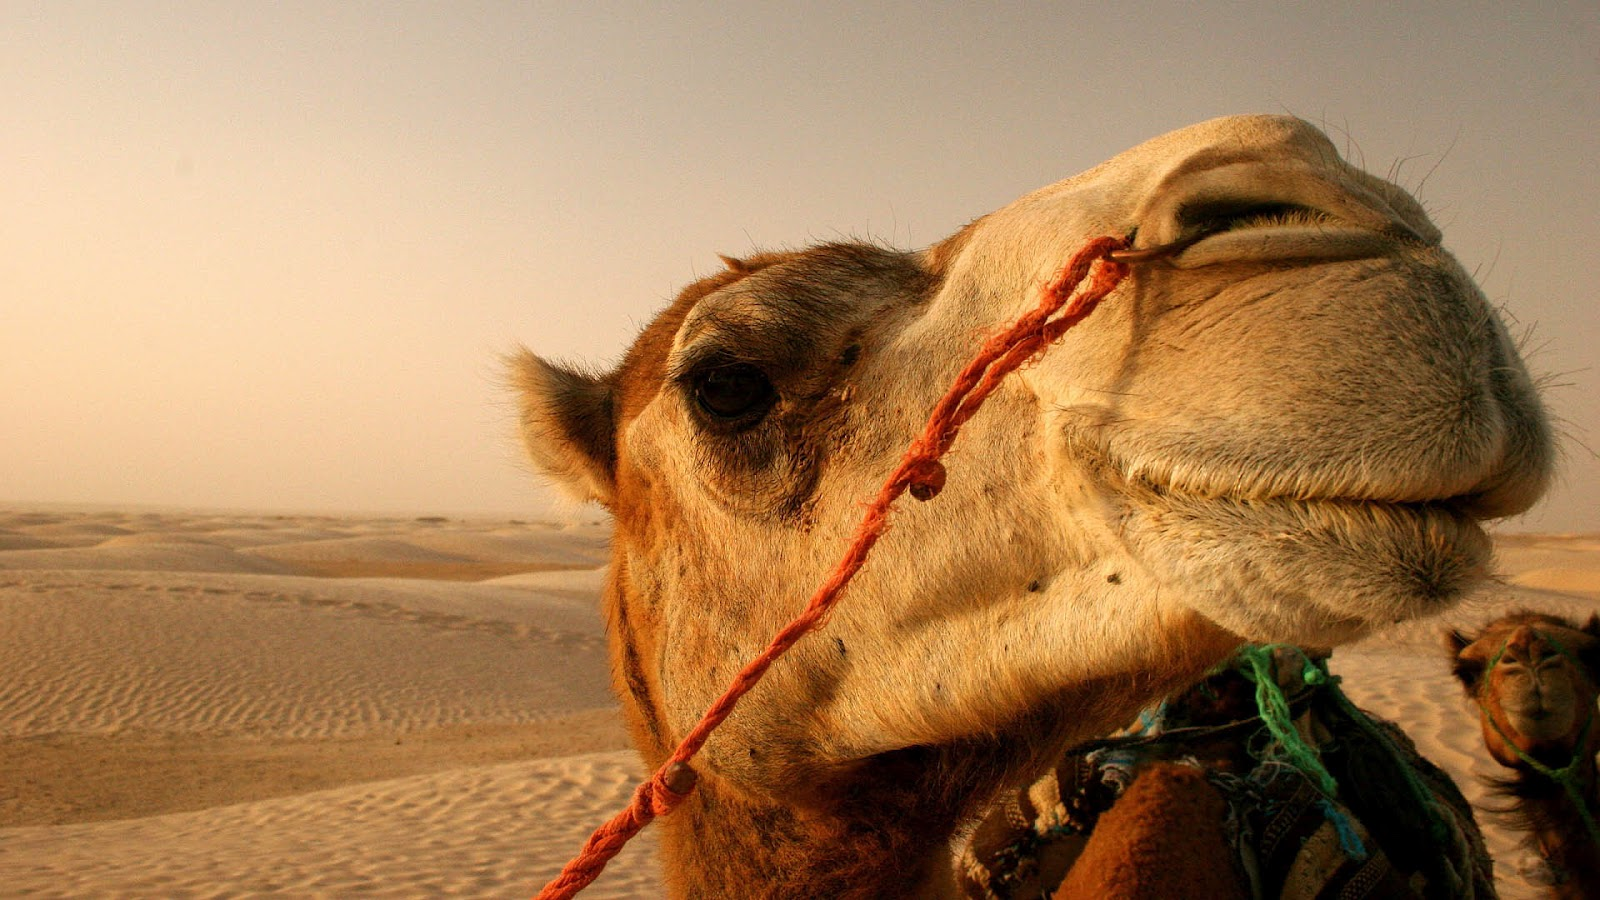 hd-camel-wallpaper-with-a-camel-in-the-desert-hd-camels-backgrounds ...